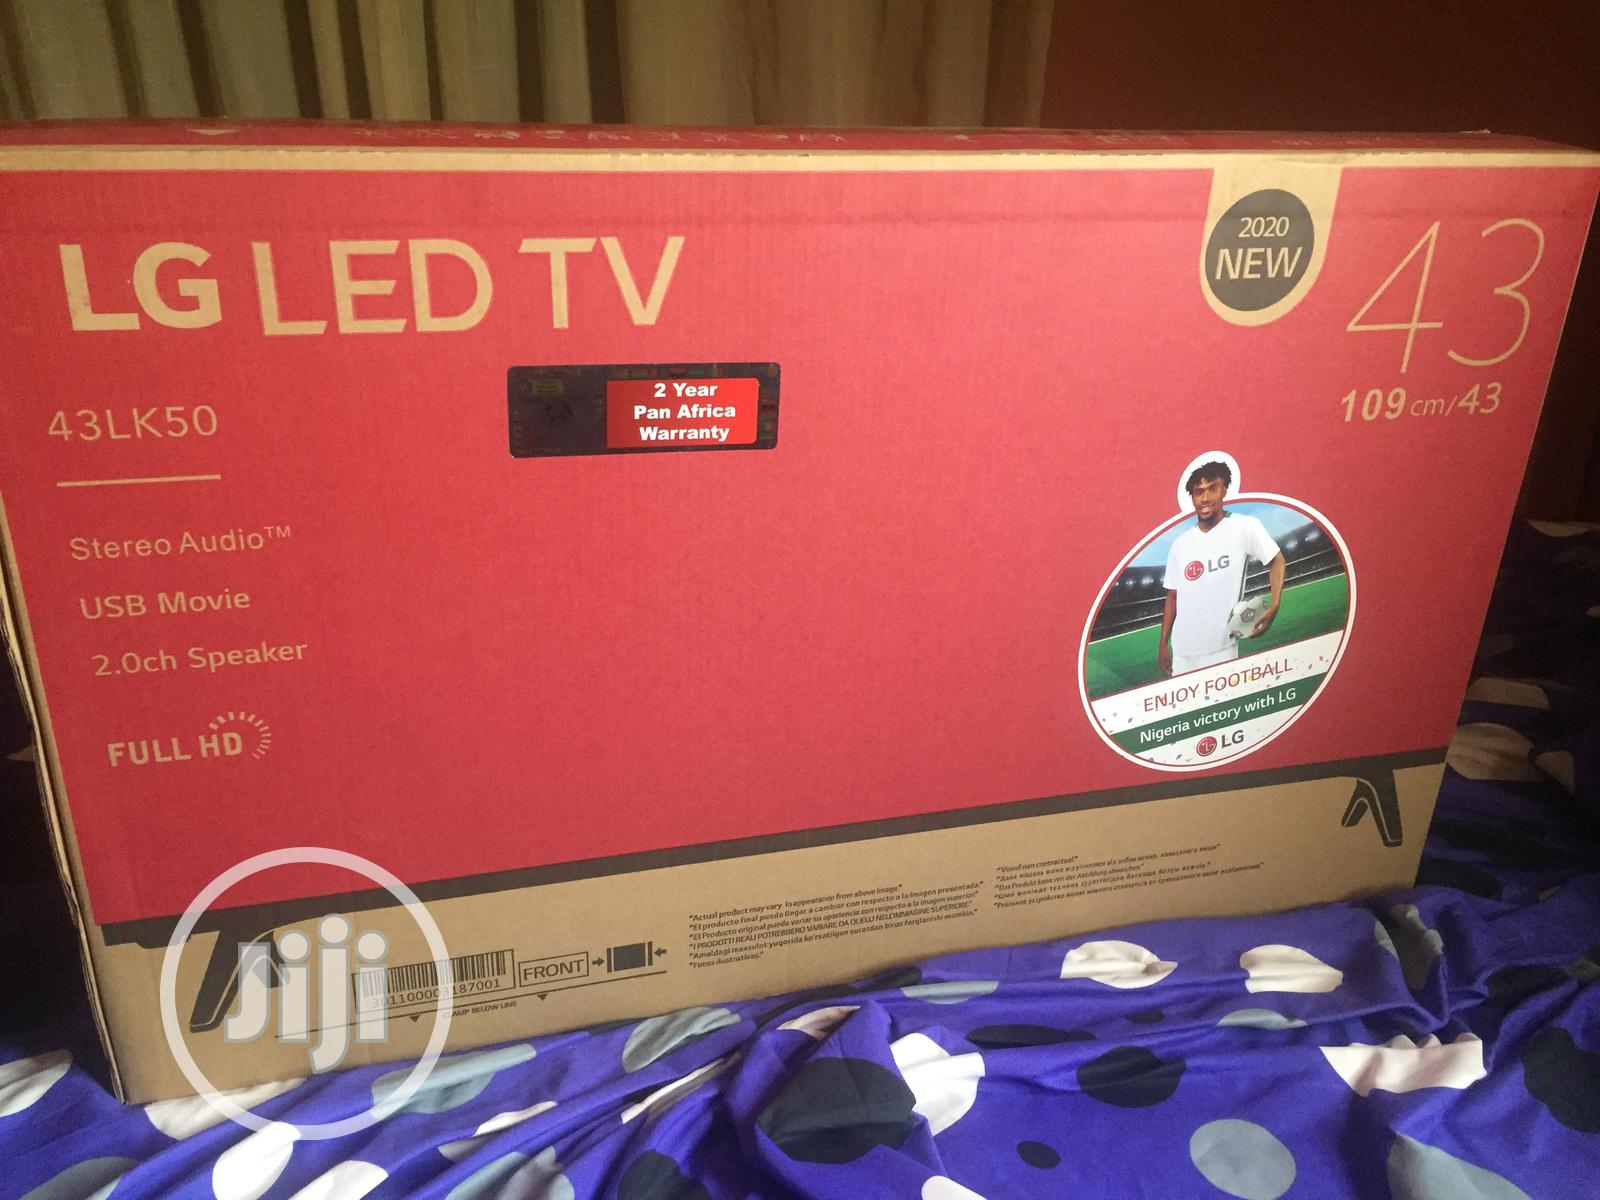 Archive: LG Led Tv 43 Inches Brand New